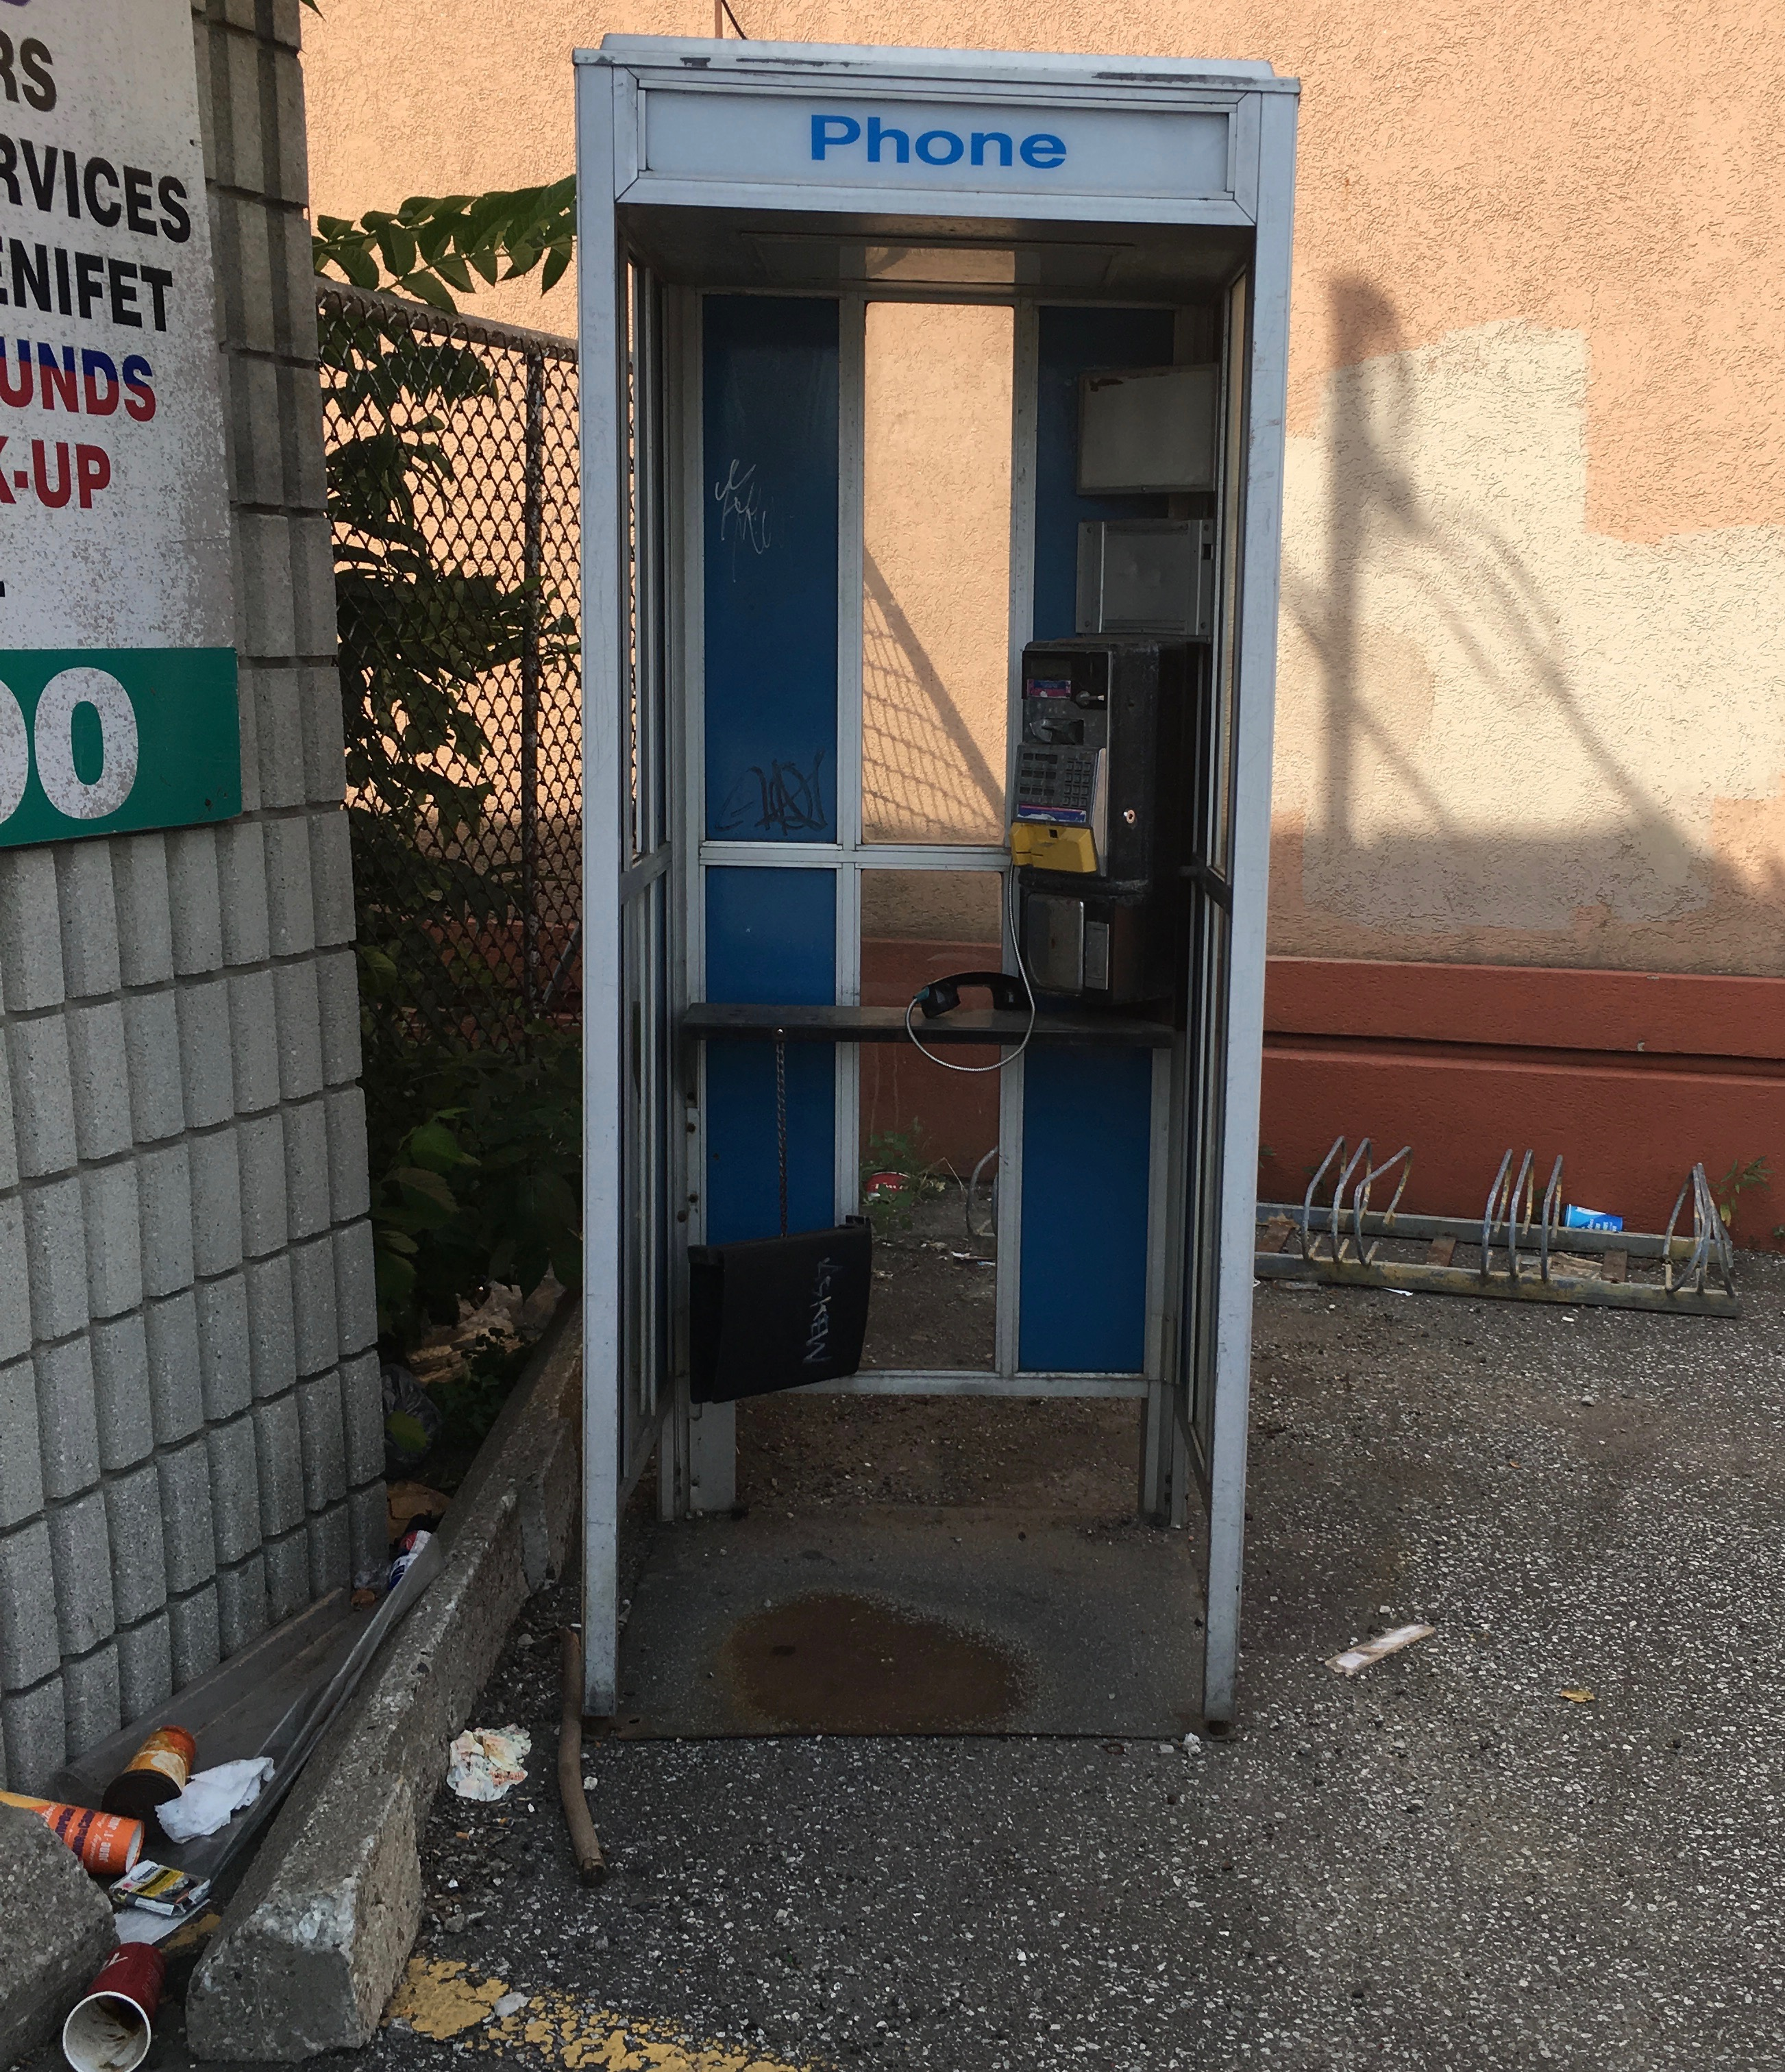 Urine stained phone booth with litter